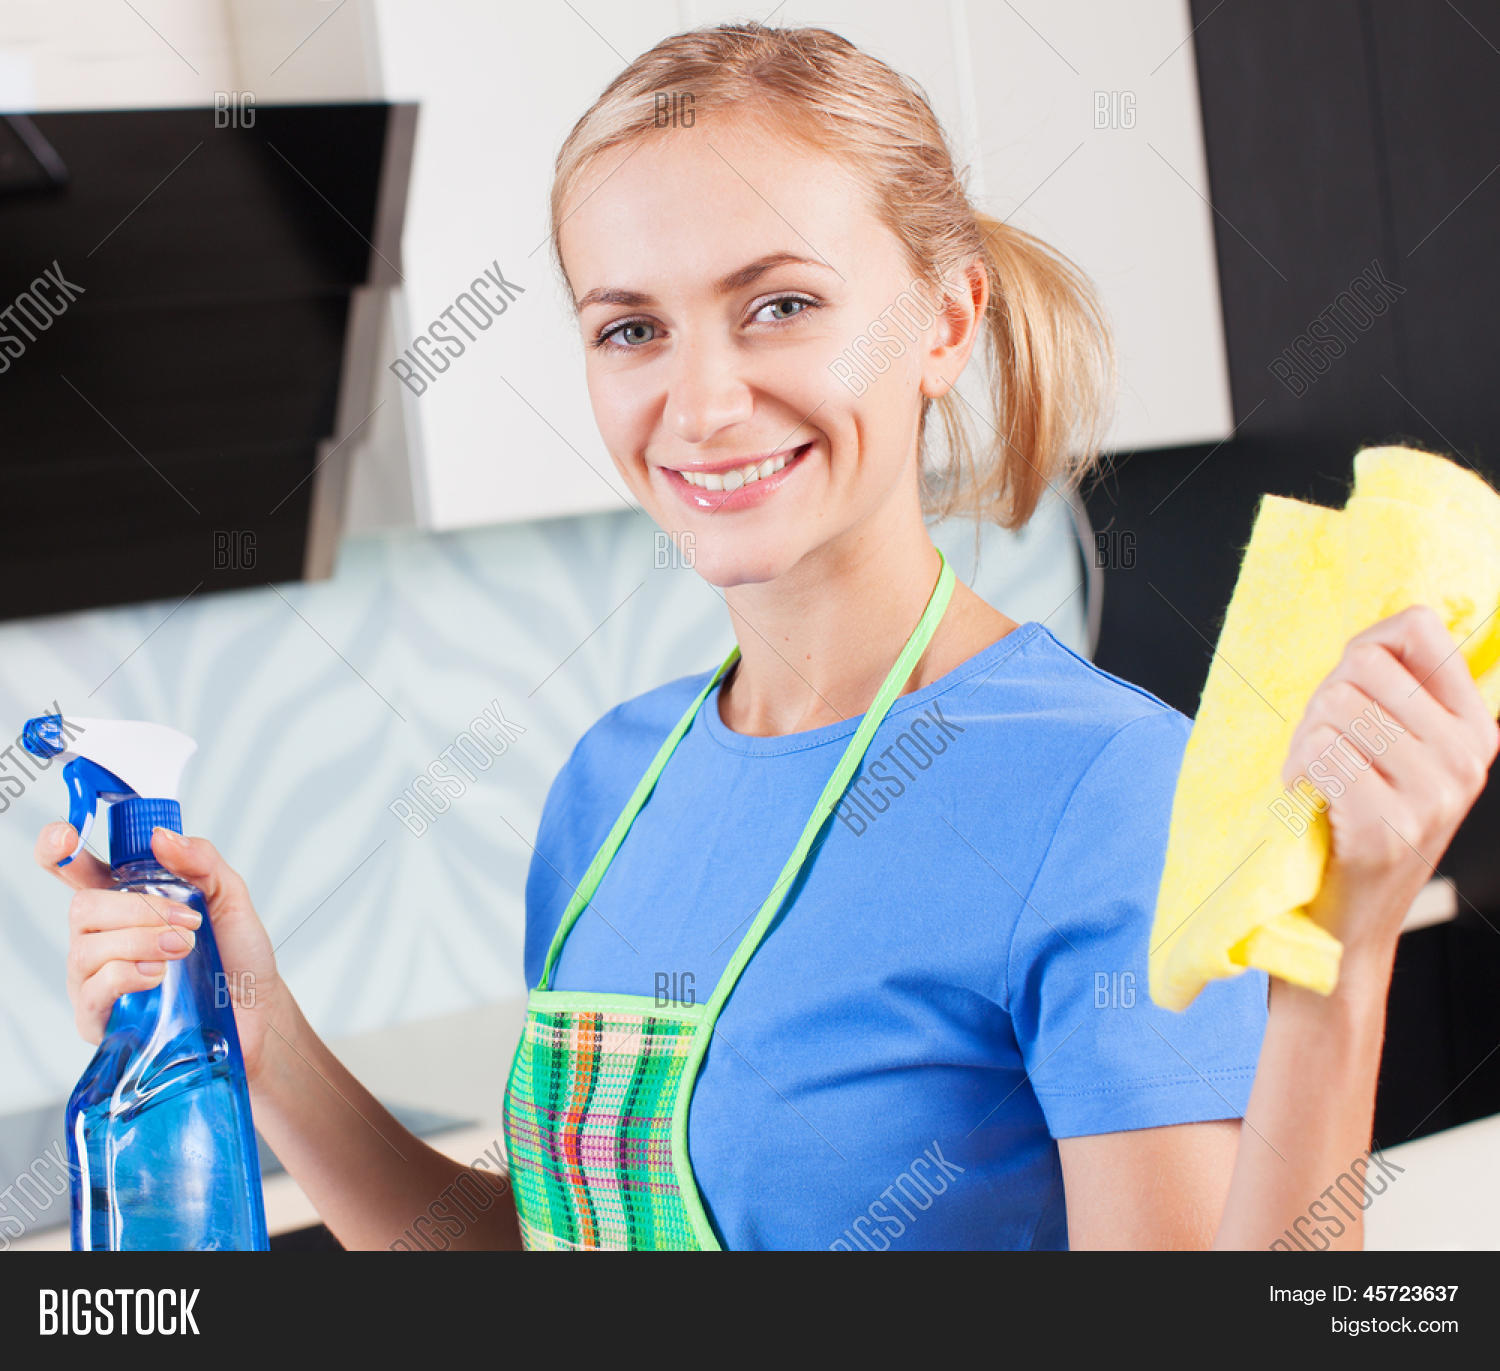 Woman Cleaning Kitchen. Young Woman Image & Photo Bigstock